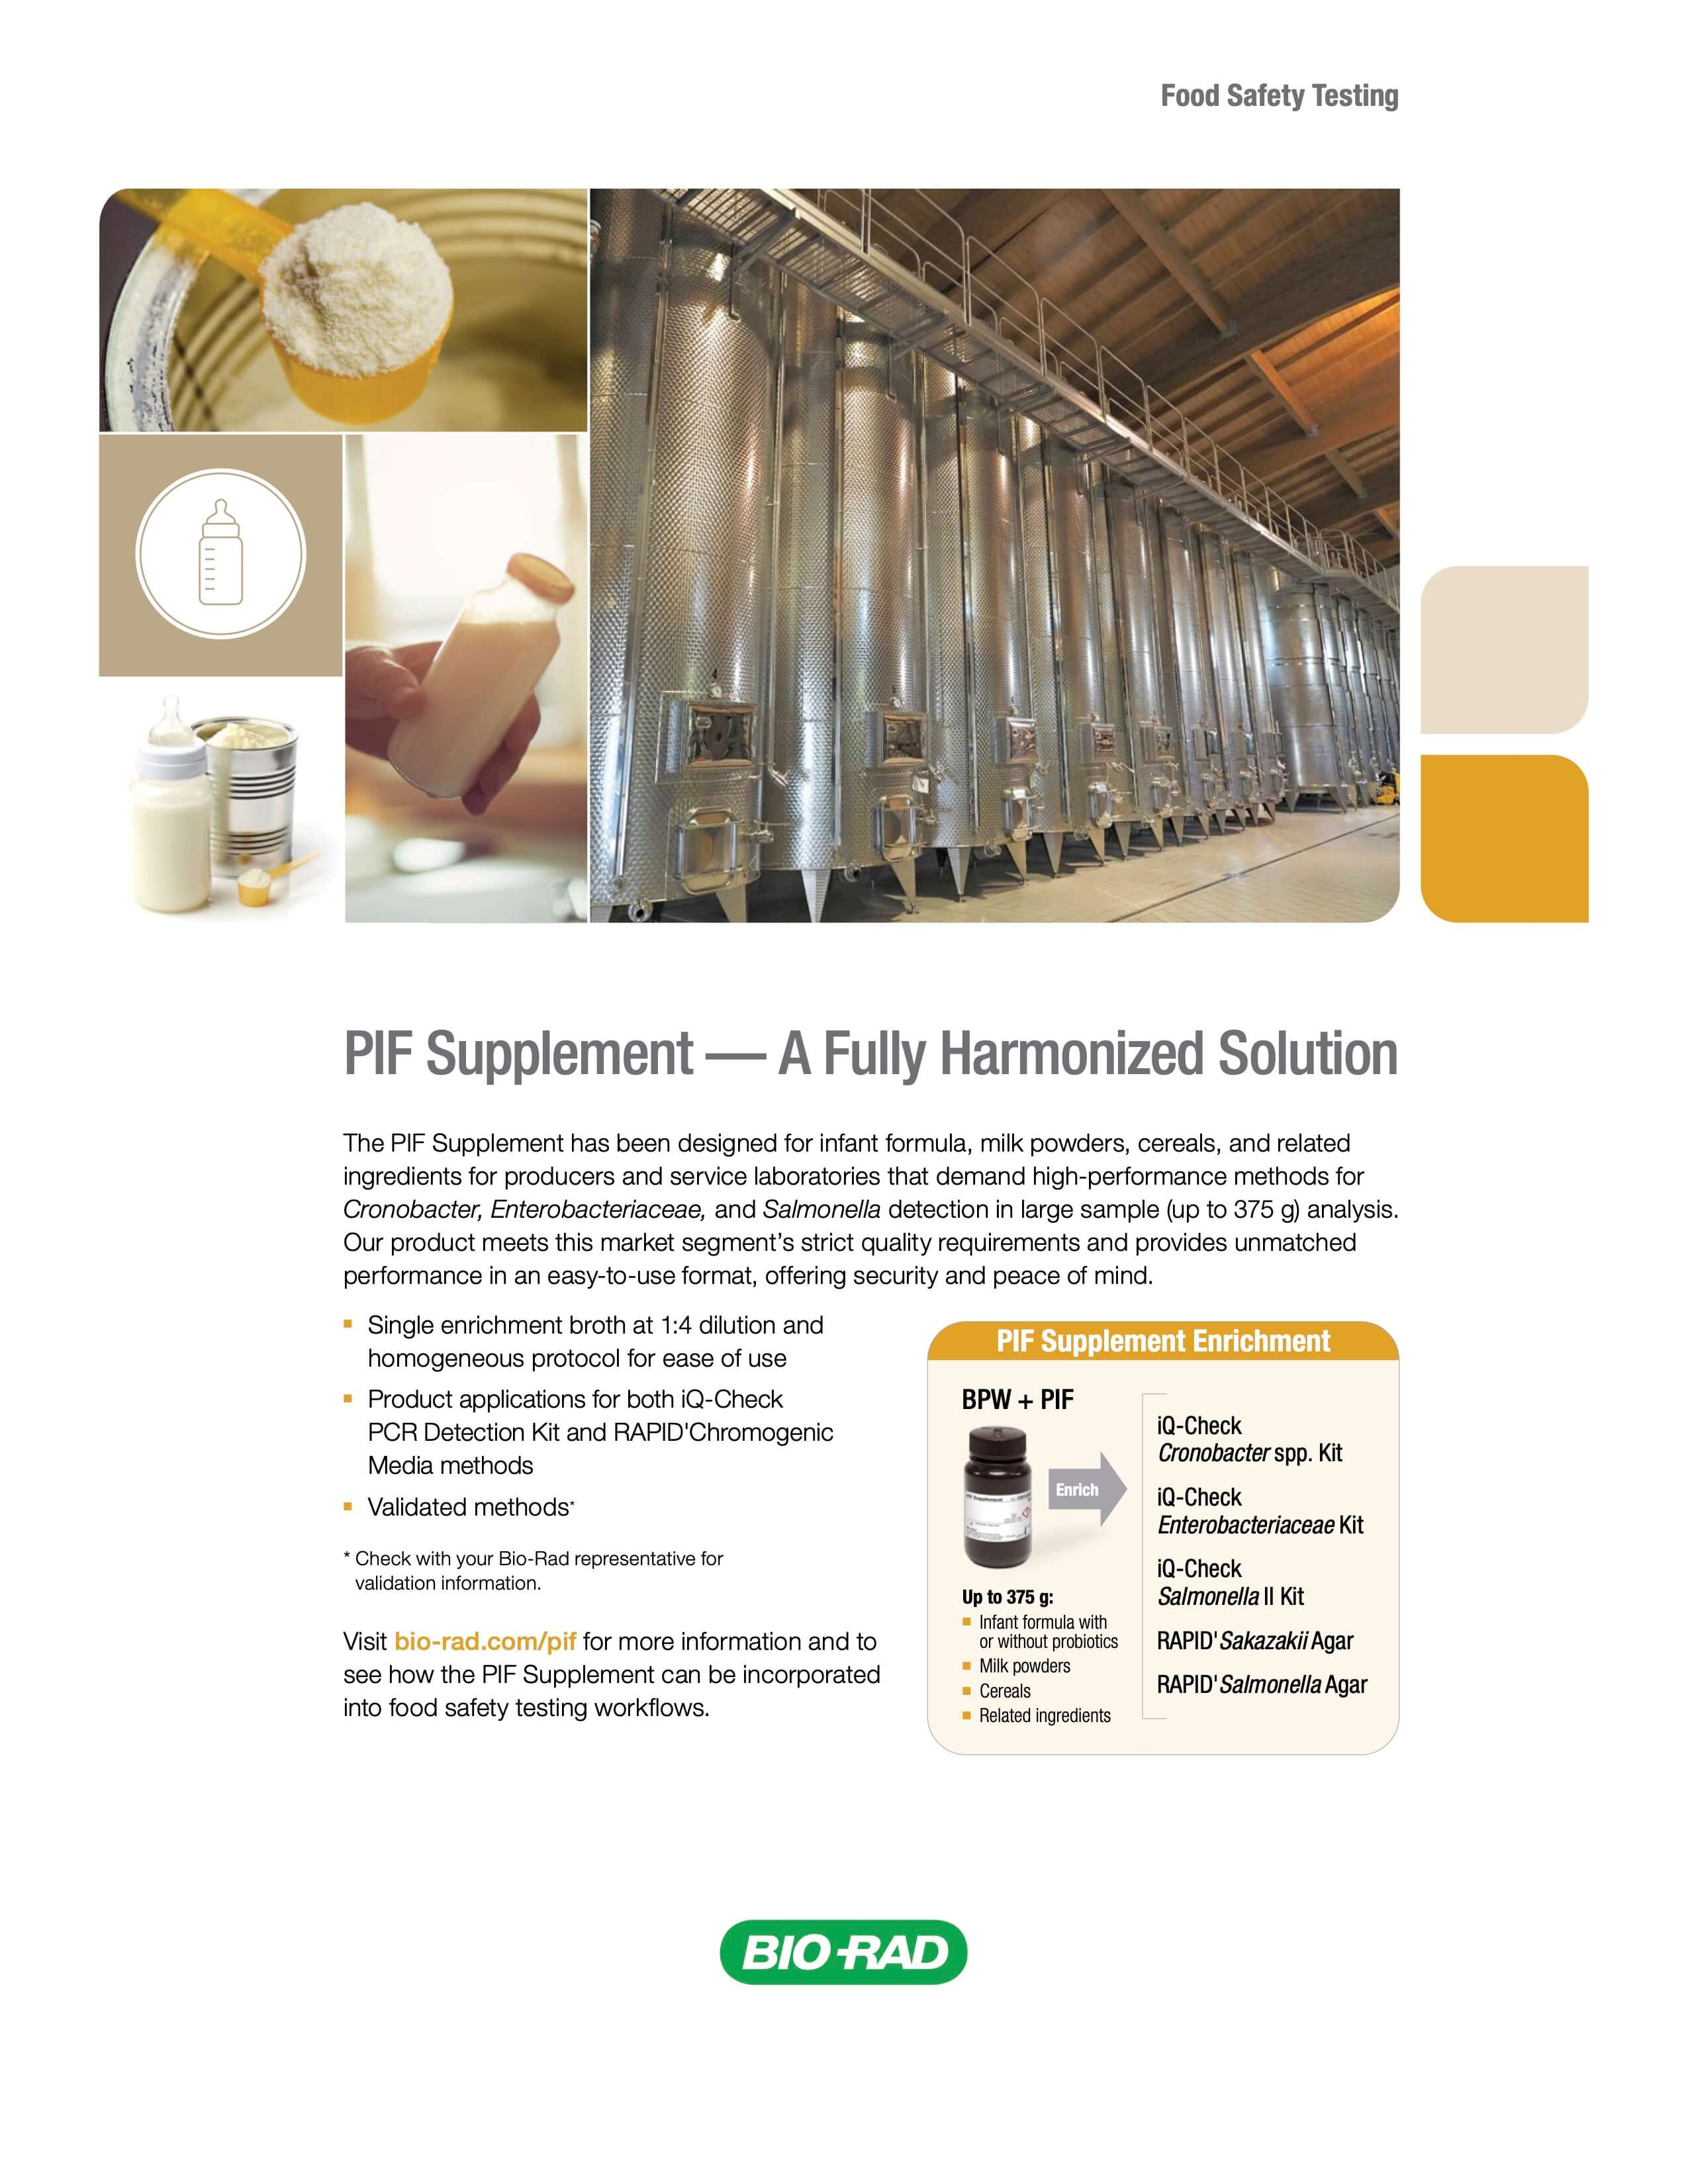 PIF Supplement – A Fully Harmonized Solution